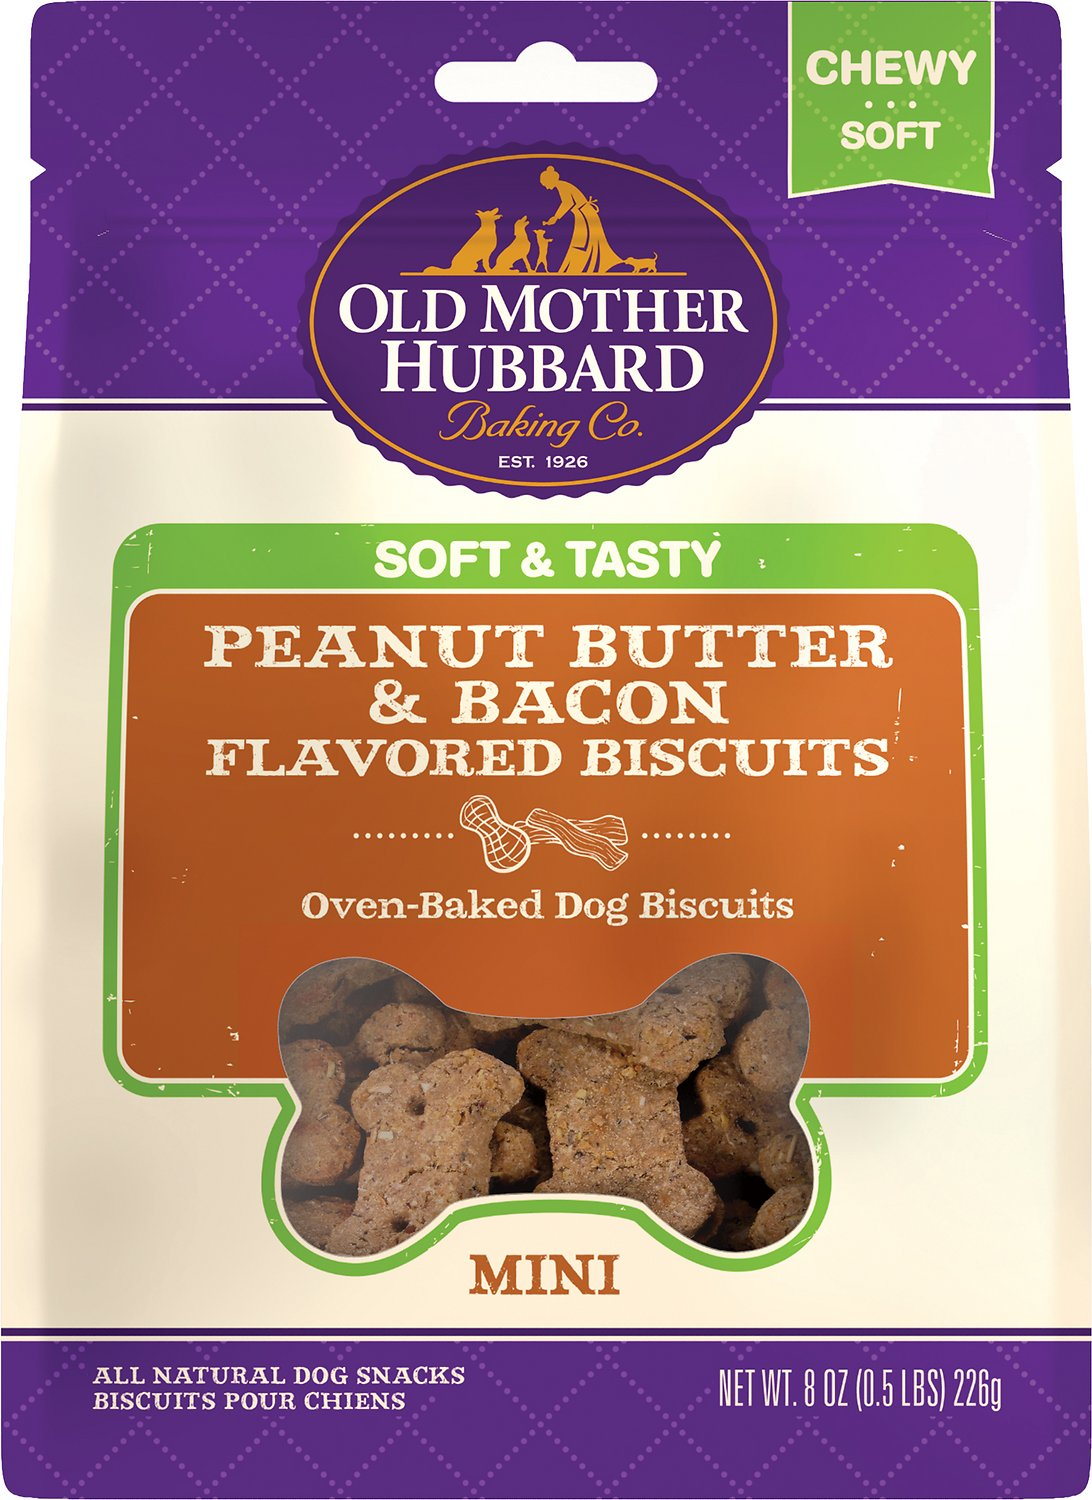 Old Mother Hubbard Mini Soft & Tasty Peanut Butter & Bacon Flavor Baked Biscuit Dog Treats, 8-oz (Size: 8-oz) Image